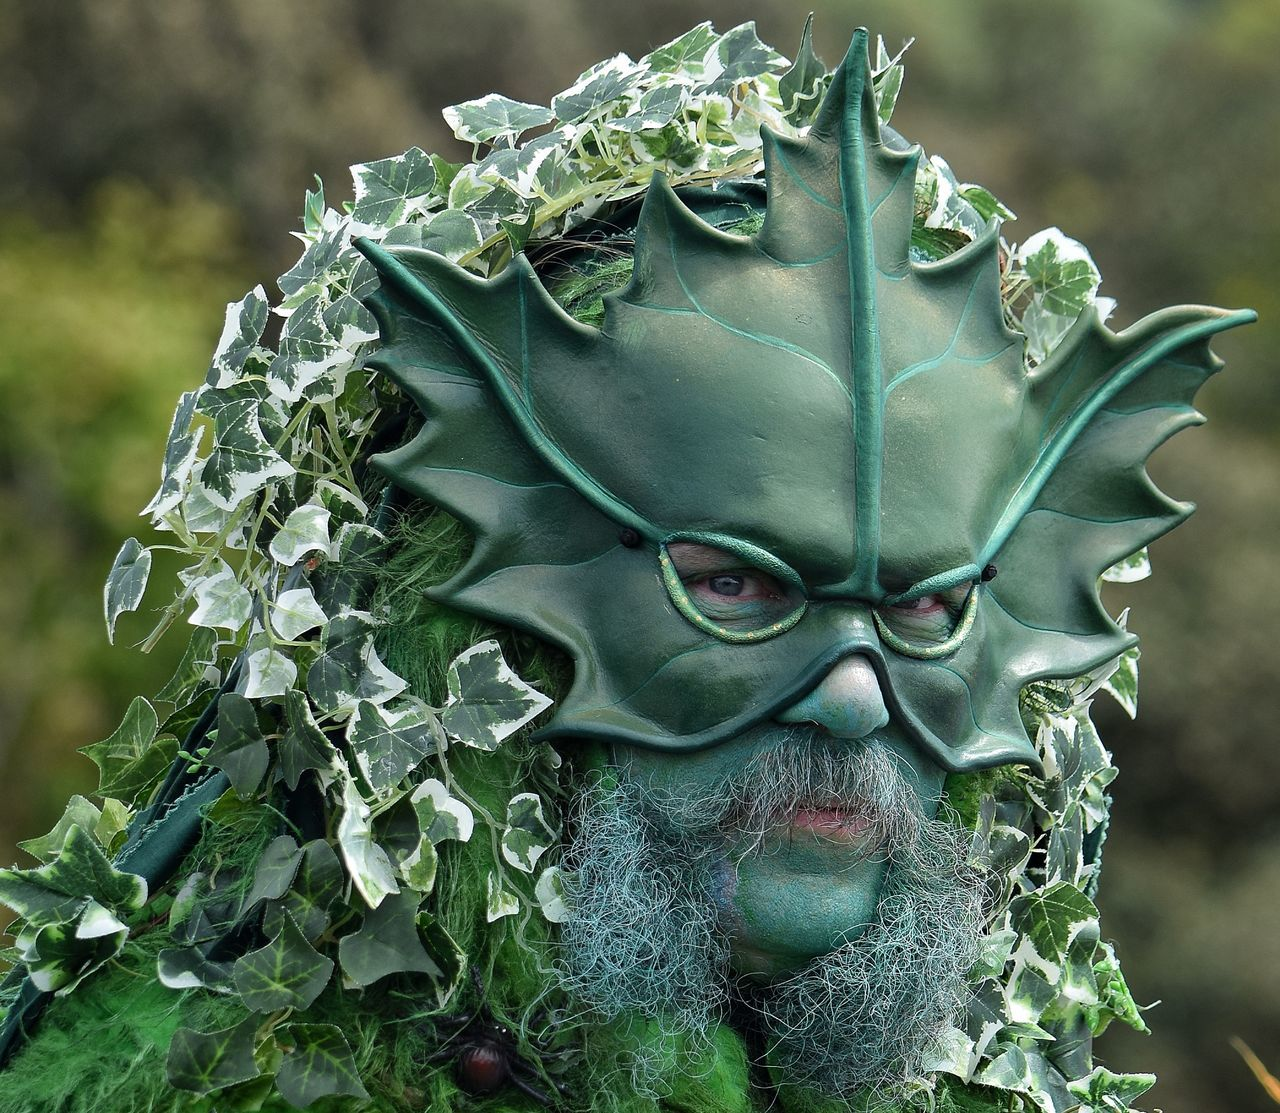 Jack In The Green Jack In The Green Festival Hastings May Day 2017 East Sussex Green Green Man Mask Beard May Day Face Make Up One Man Only Portrait Green Face Close-up Pagan Outdoors May Festival Nature Festival Bearded Man Parade Celebration Costume Life